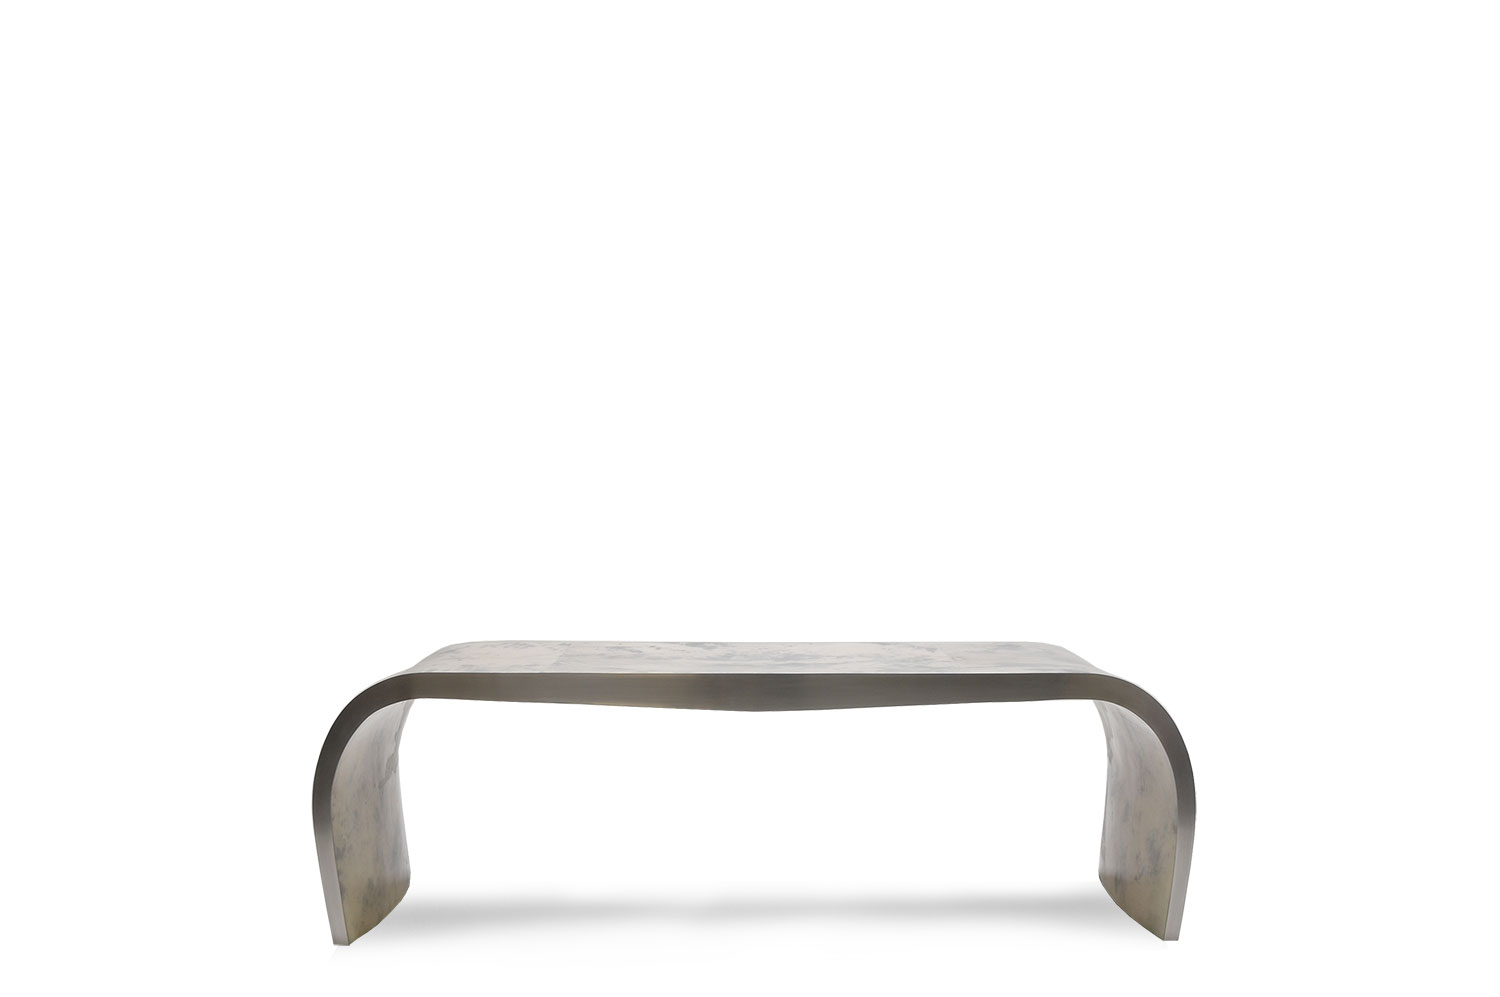 Concave Bench - Goatskin/Stainless 0